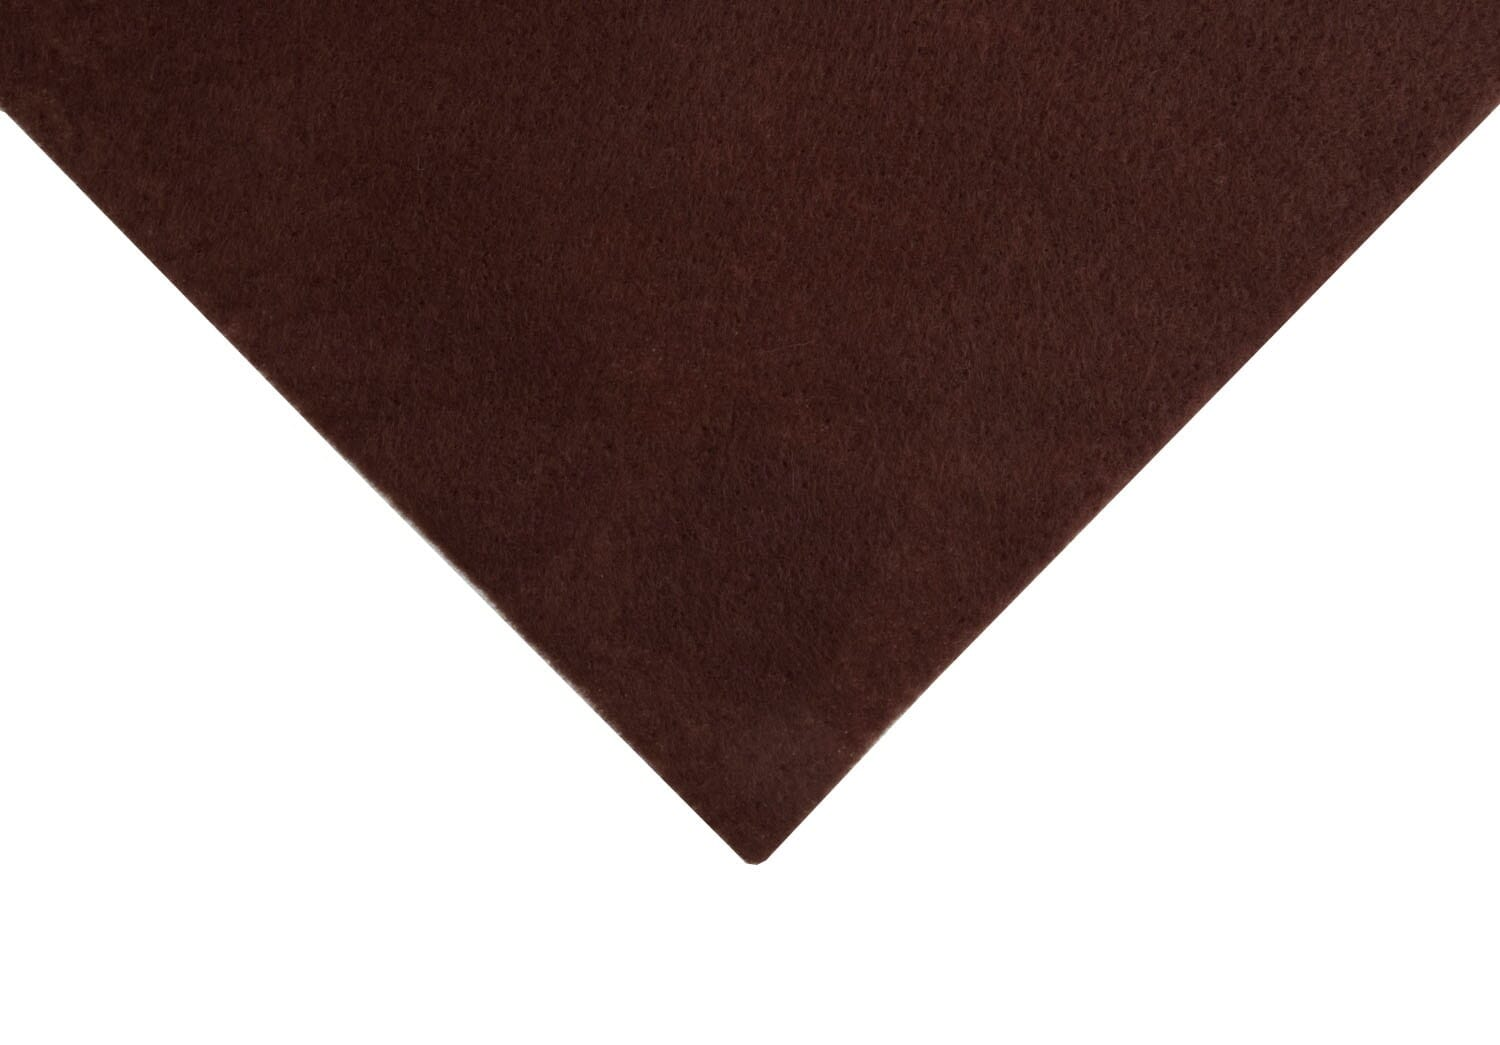 Crafting Felt 3mm Thick Brown